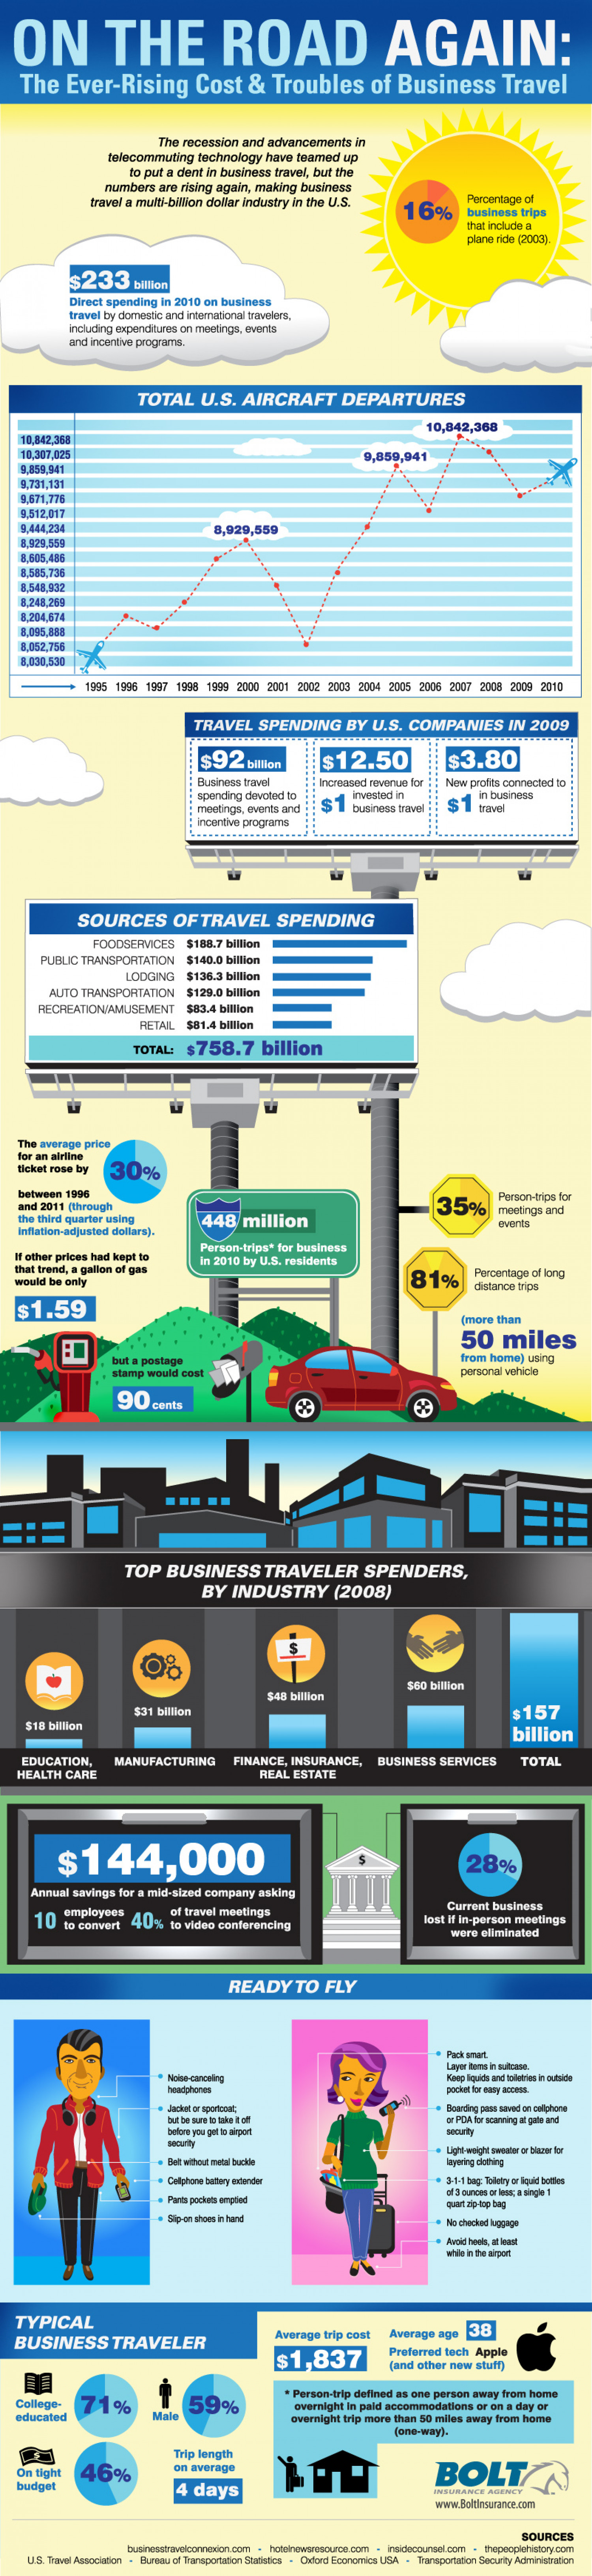 On the road again: The ever-rising costs and troubles of business travel infographic and statistics Infographic